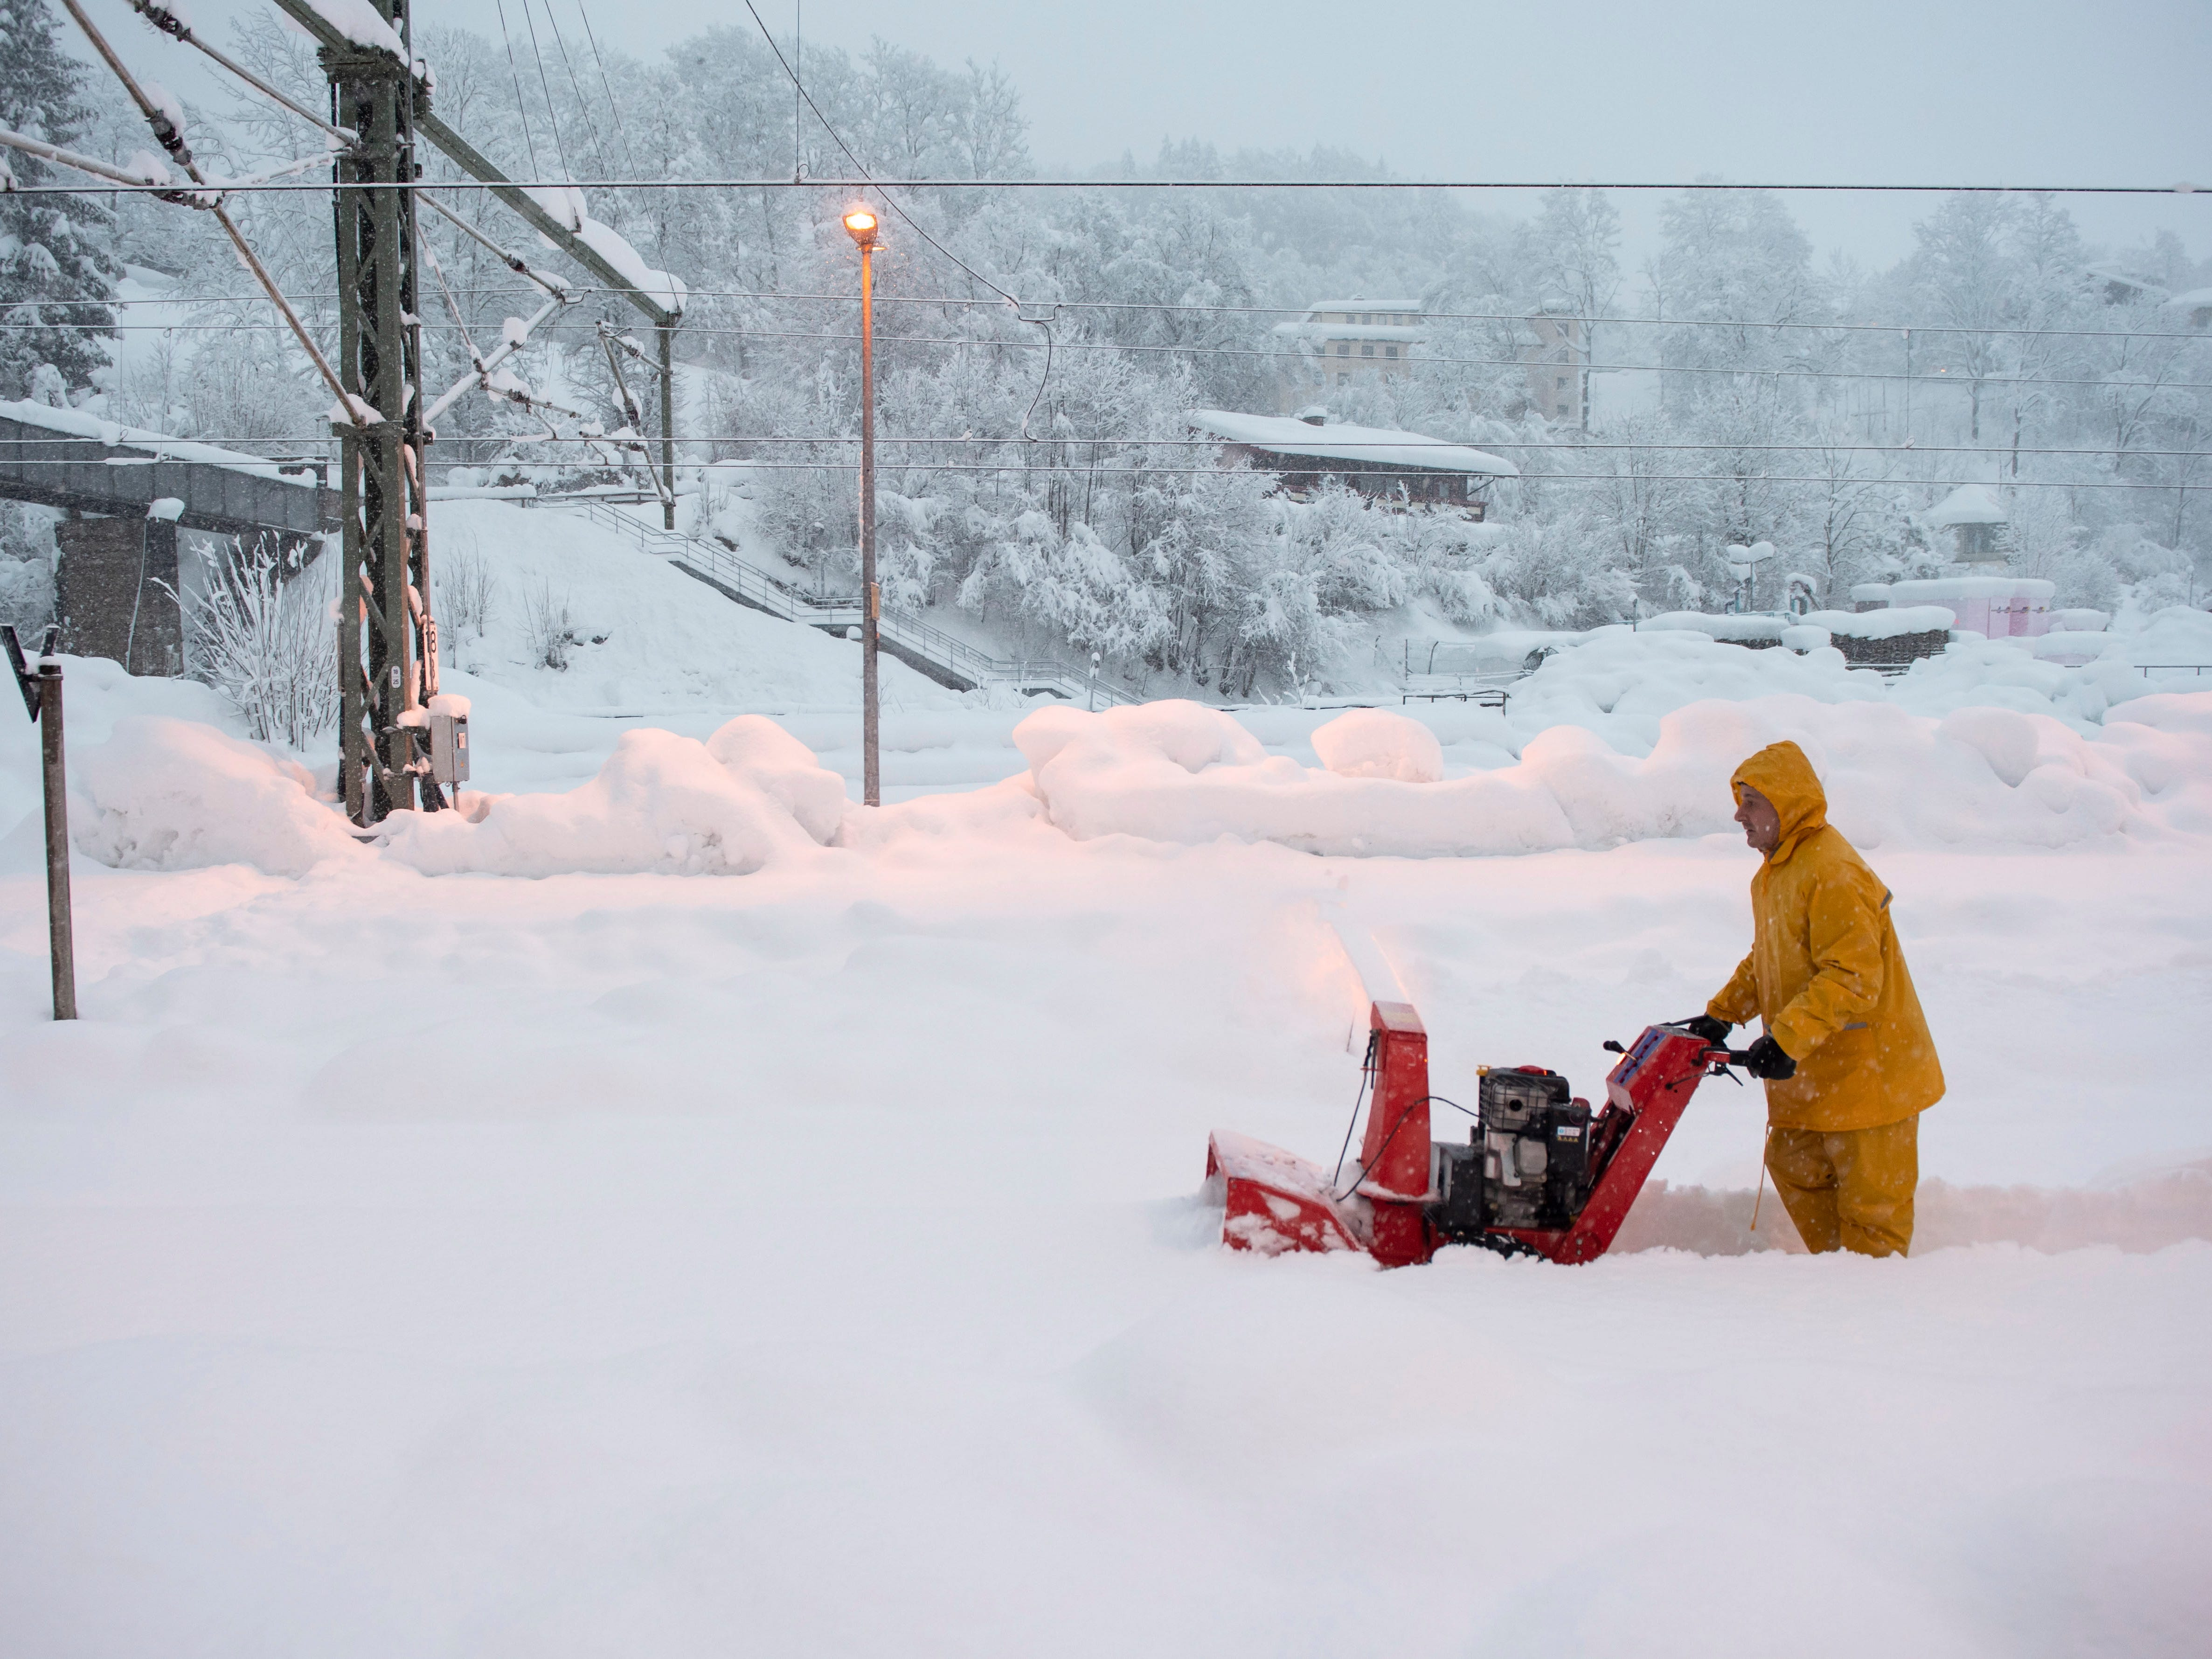 A man uses a snow blower to free a platform at the station in Berchtesgaden, Bavaria, Germany, Jan. 10, 2019.